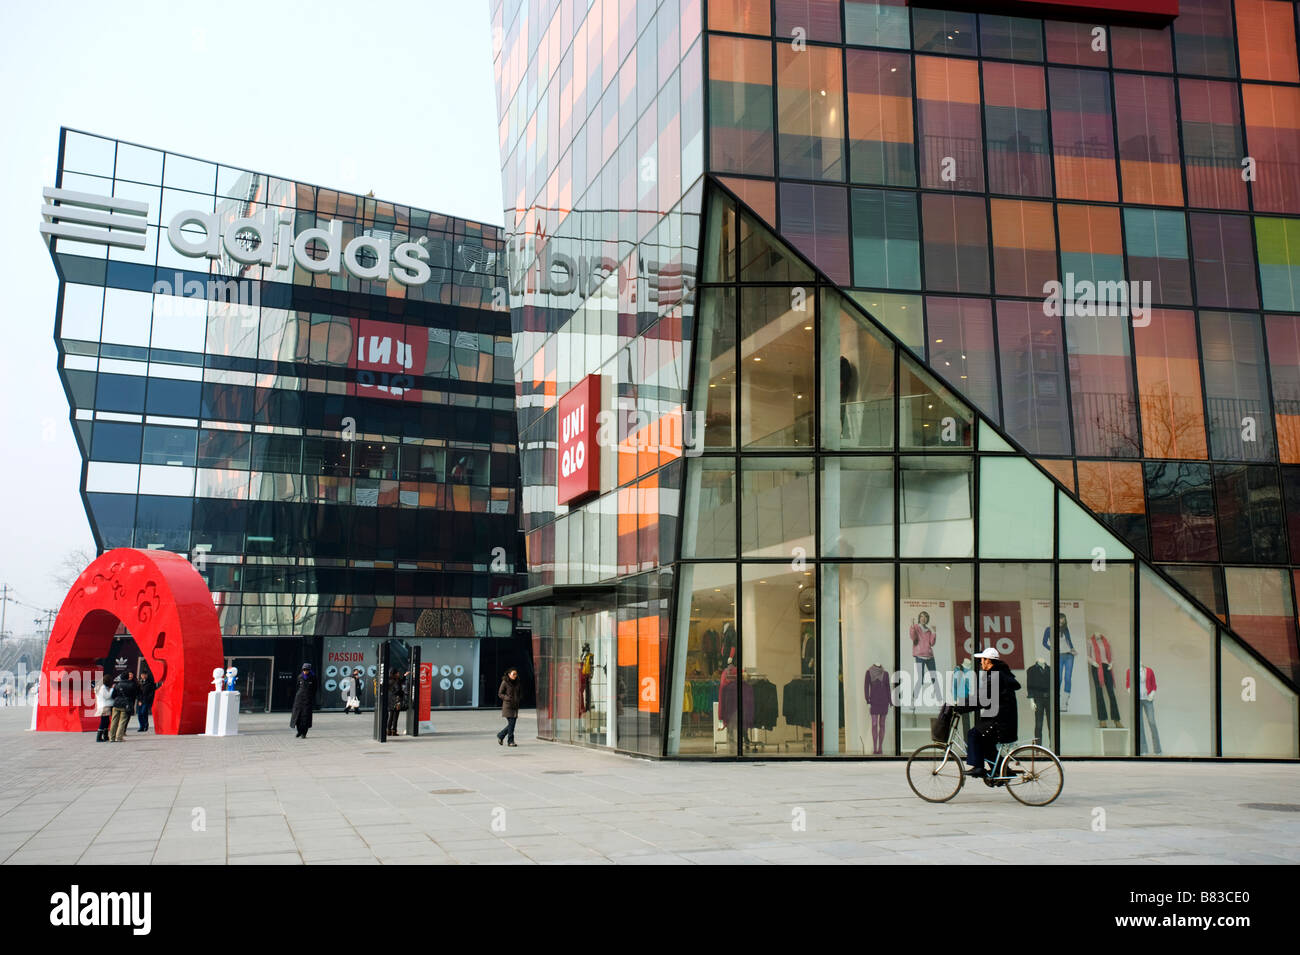 New ultra modern Uniqlo and Adidas flagship stores in new retail development called The Village in Beijing - Stock Image